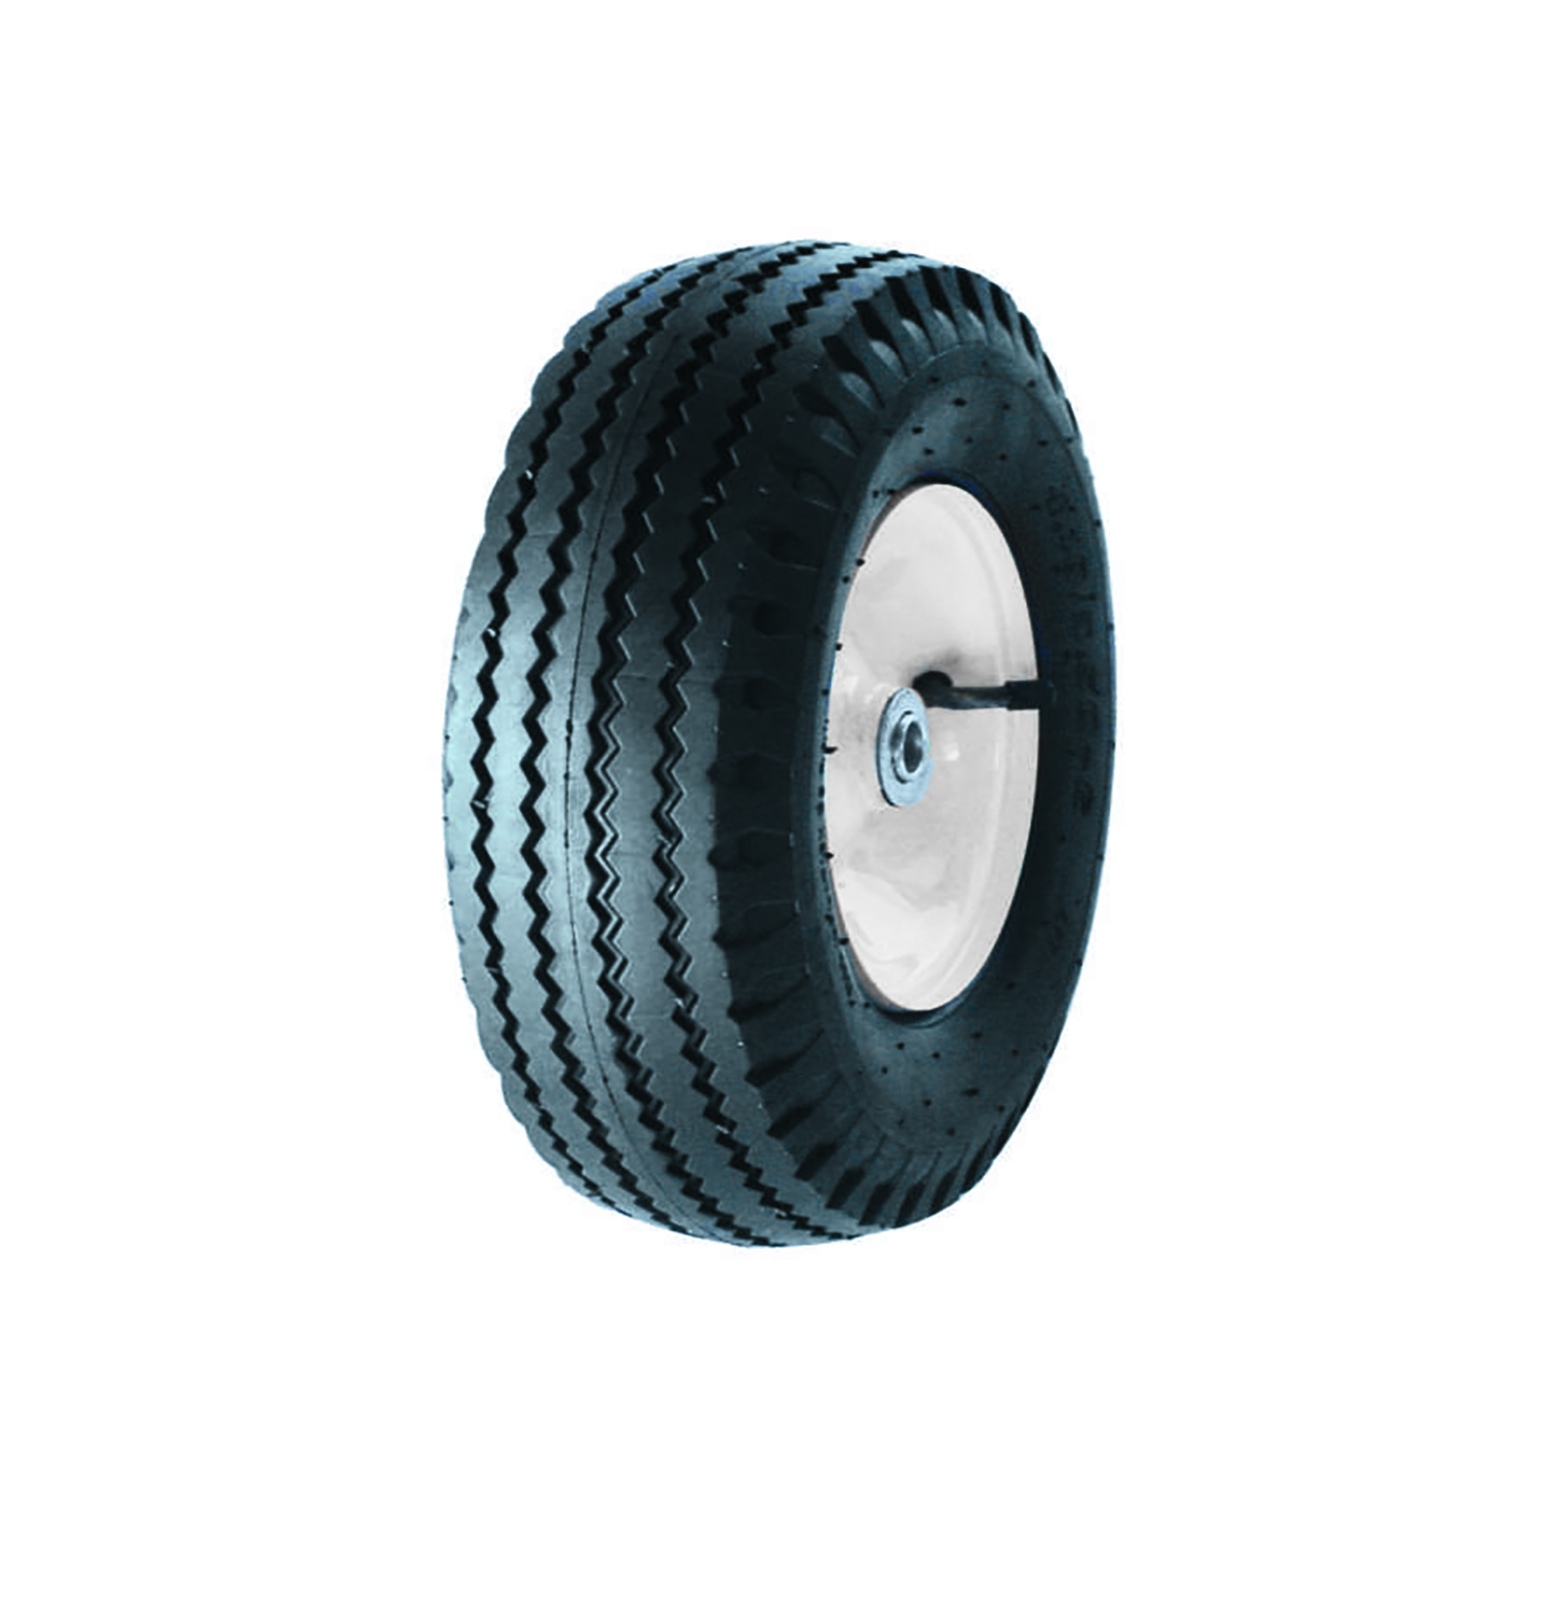 BRICK AND BLOCK CART BRC 800 REPLACEMENT TIRE